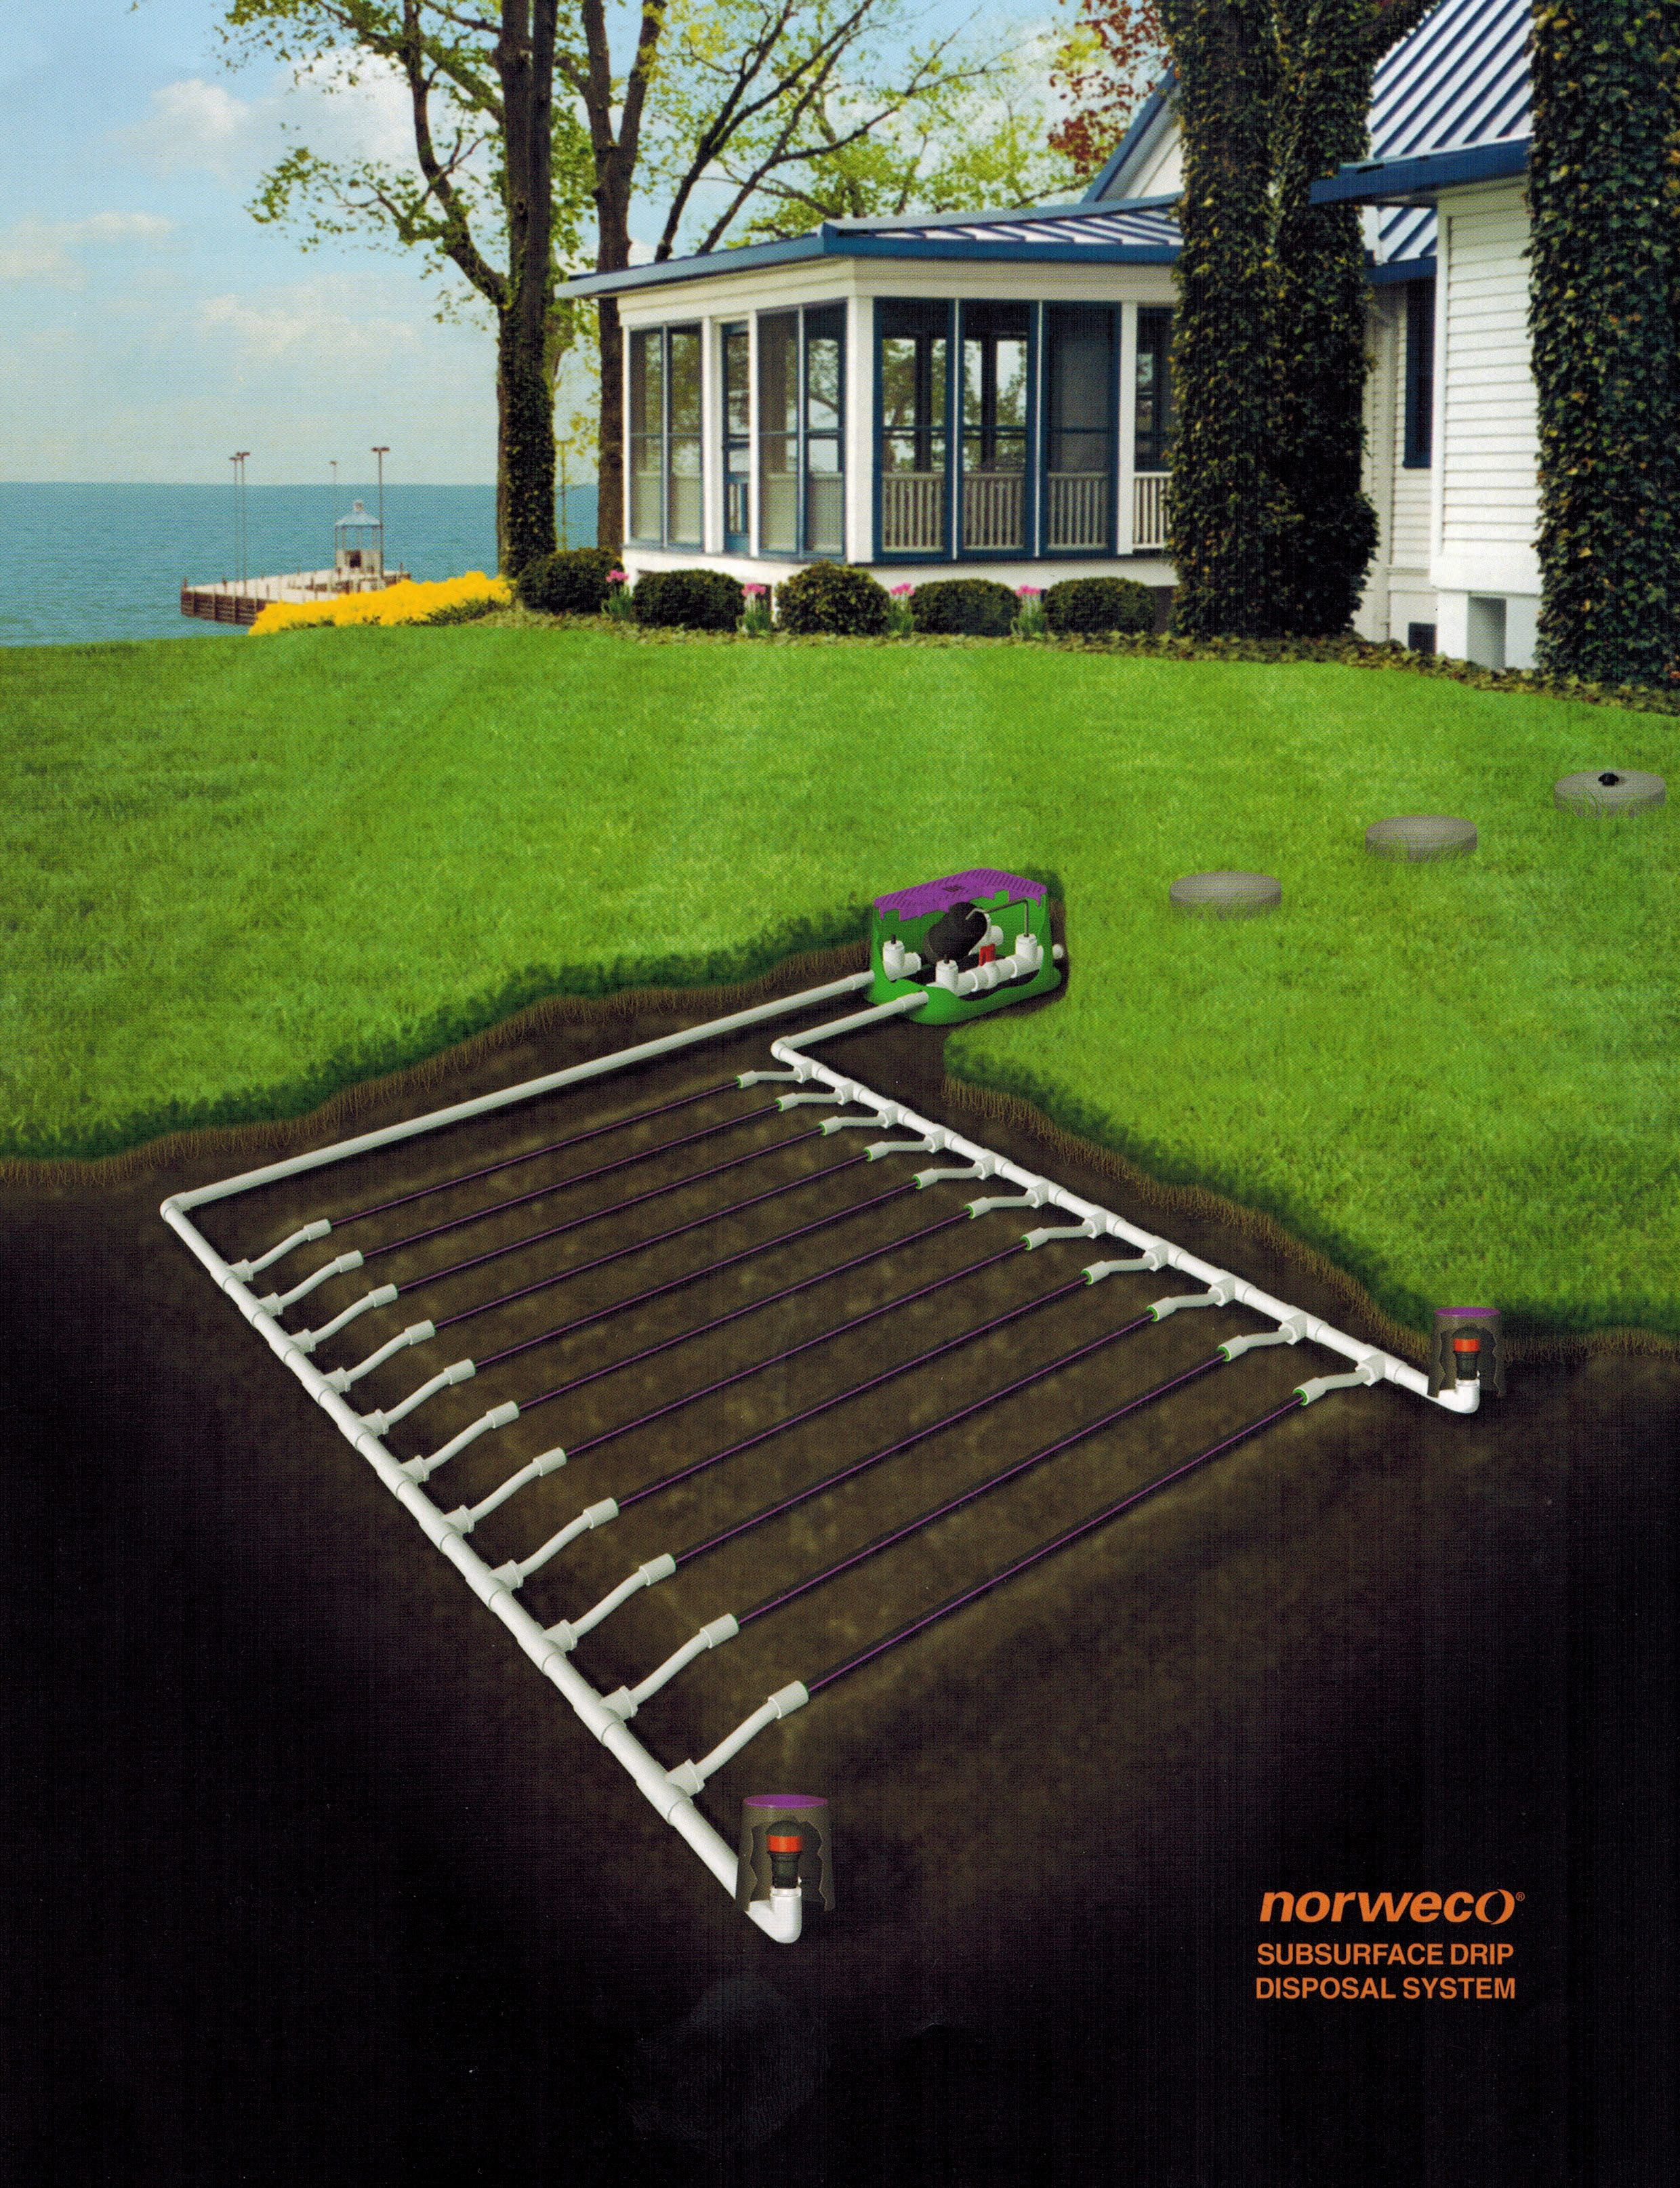 Norweco Subsurface Drip Disposal System Garden Amp Landscape